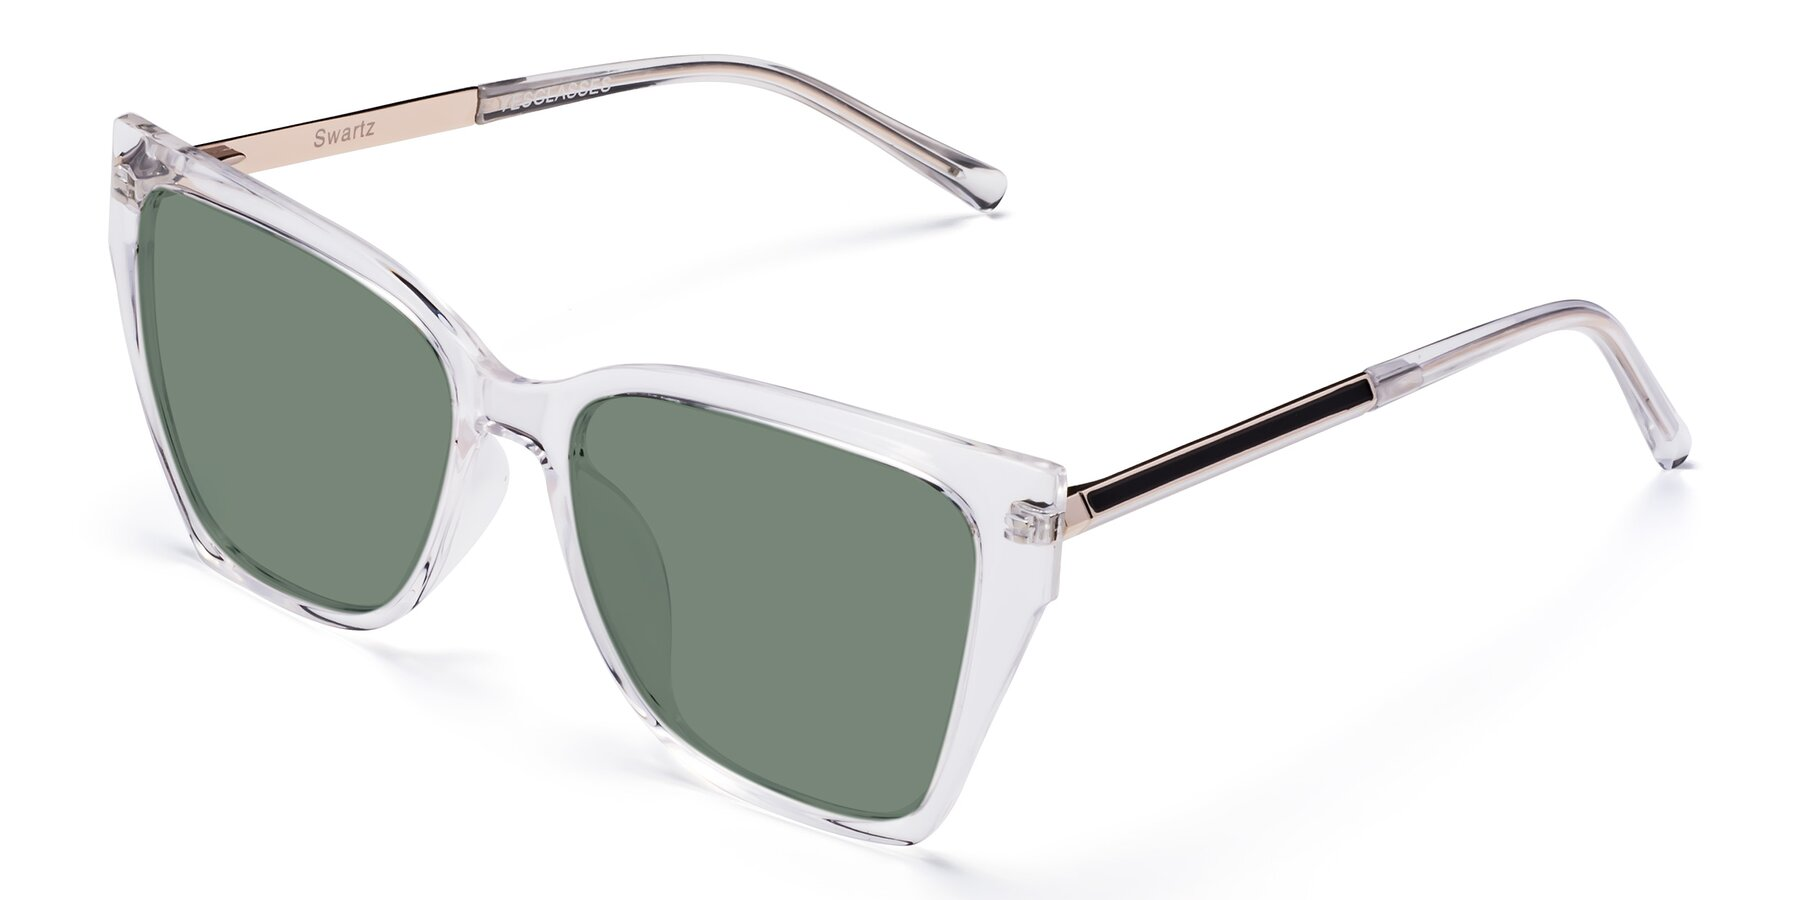 Angle of Swartz in Clear with Medium Green Tinted Lenses